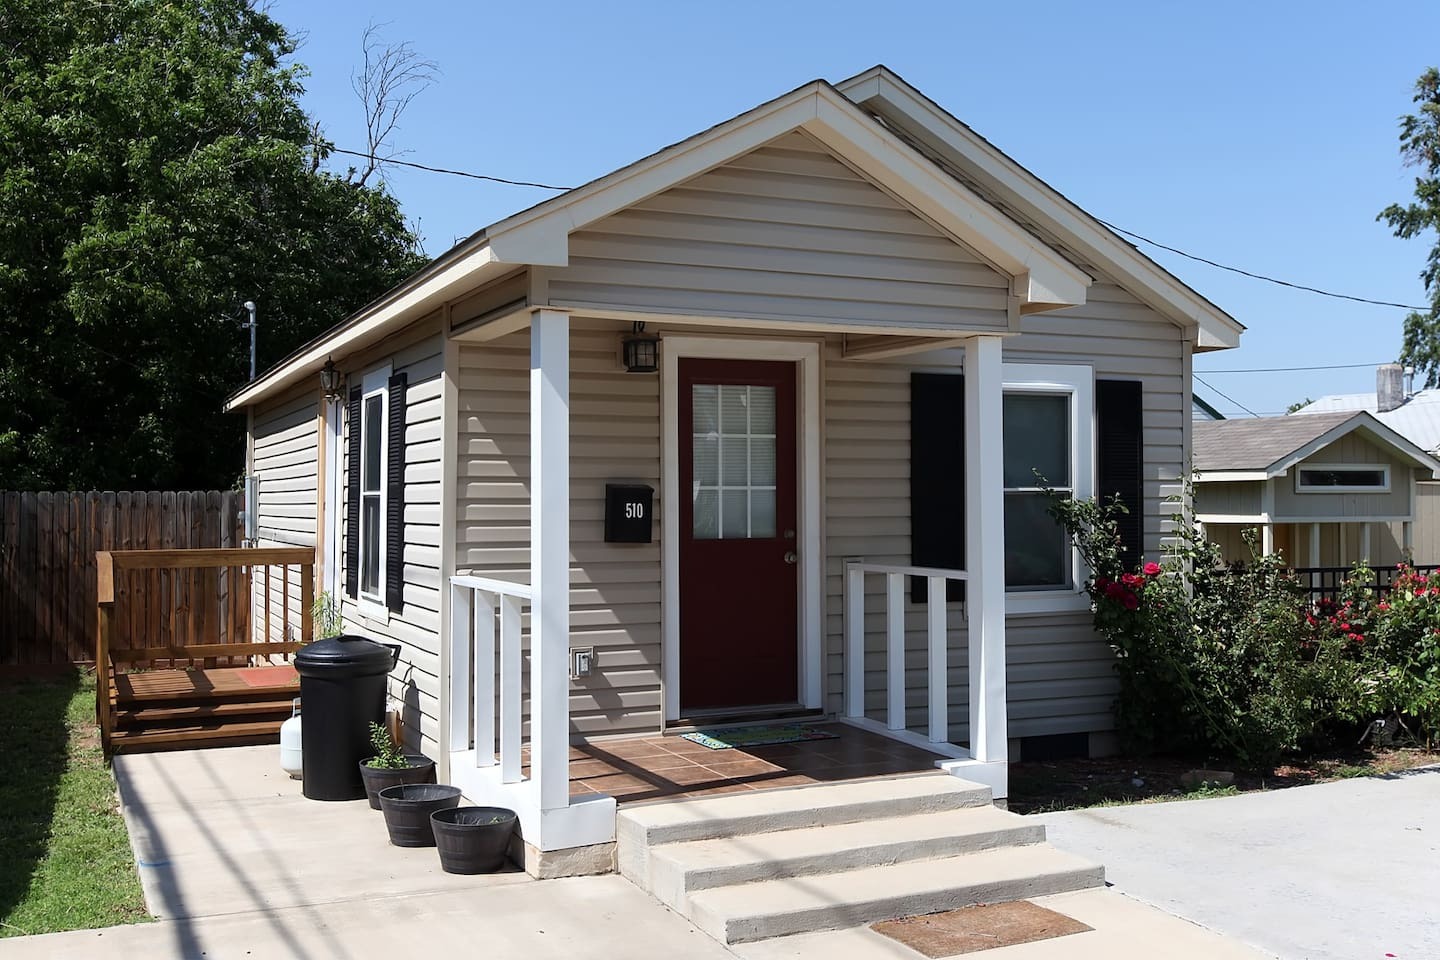 The house is located in a quiet neighborhood with good neighbors, and there is plenty of parking in front of the house.